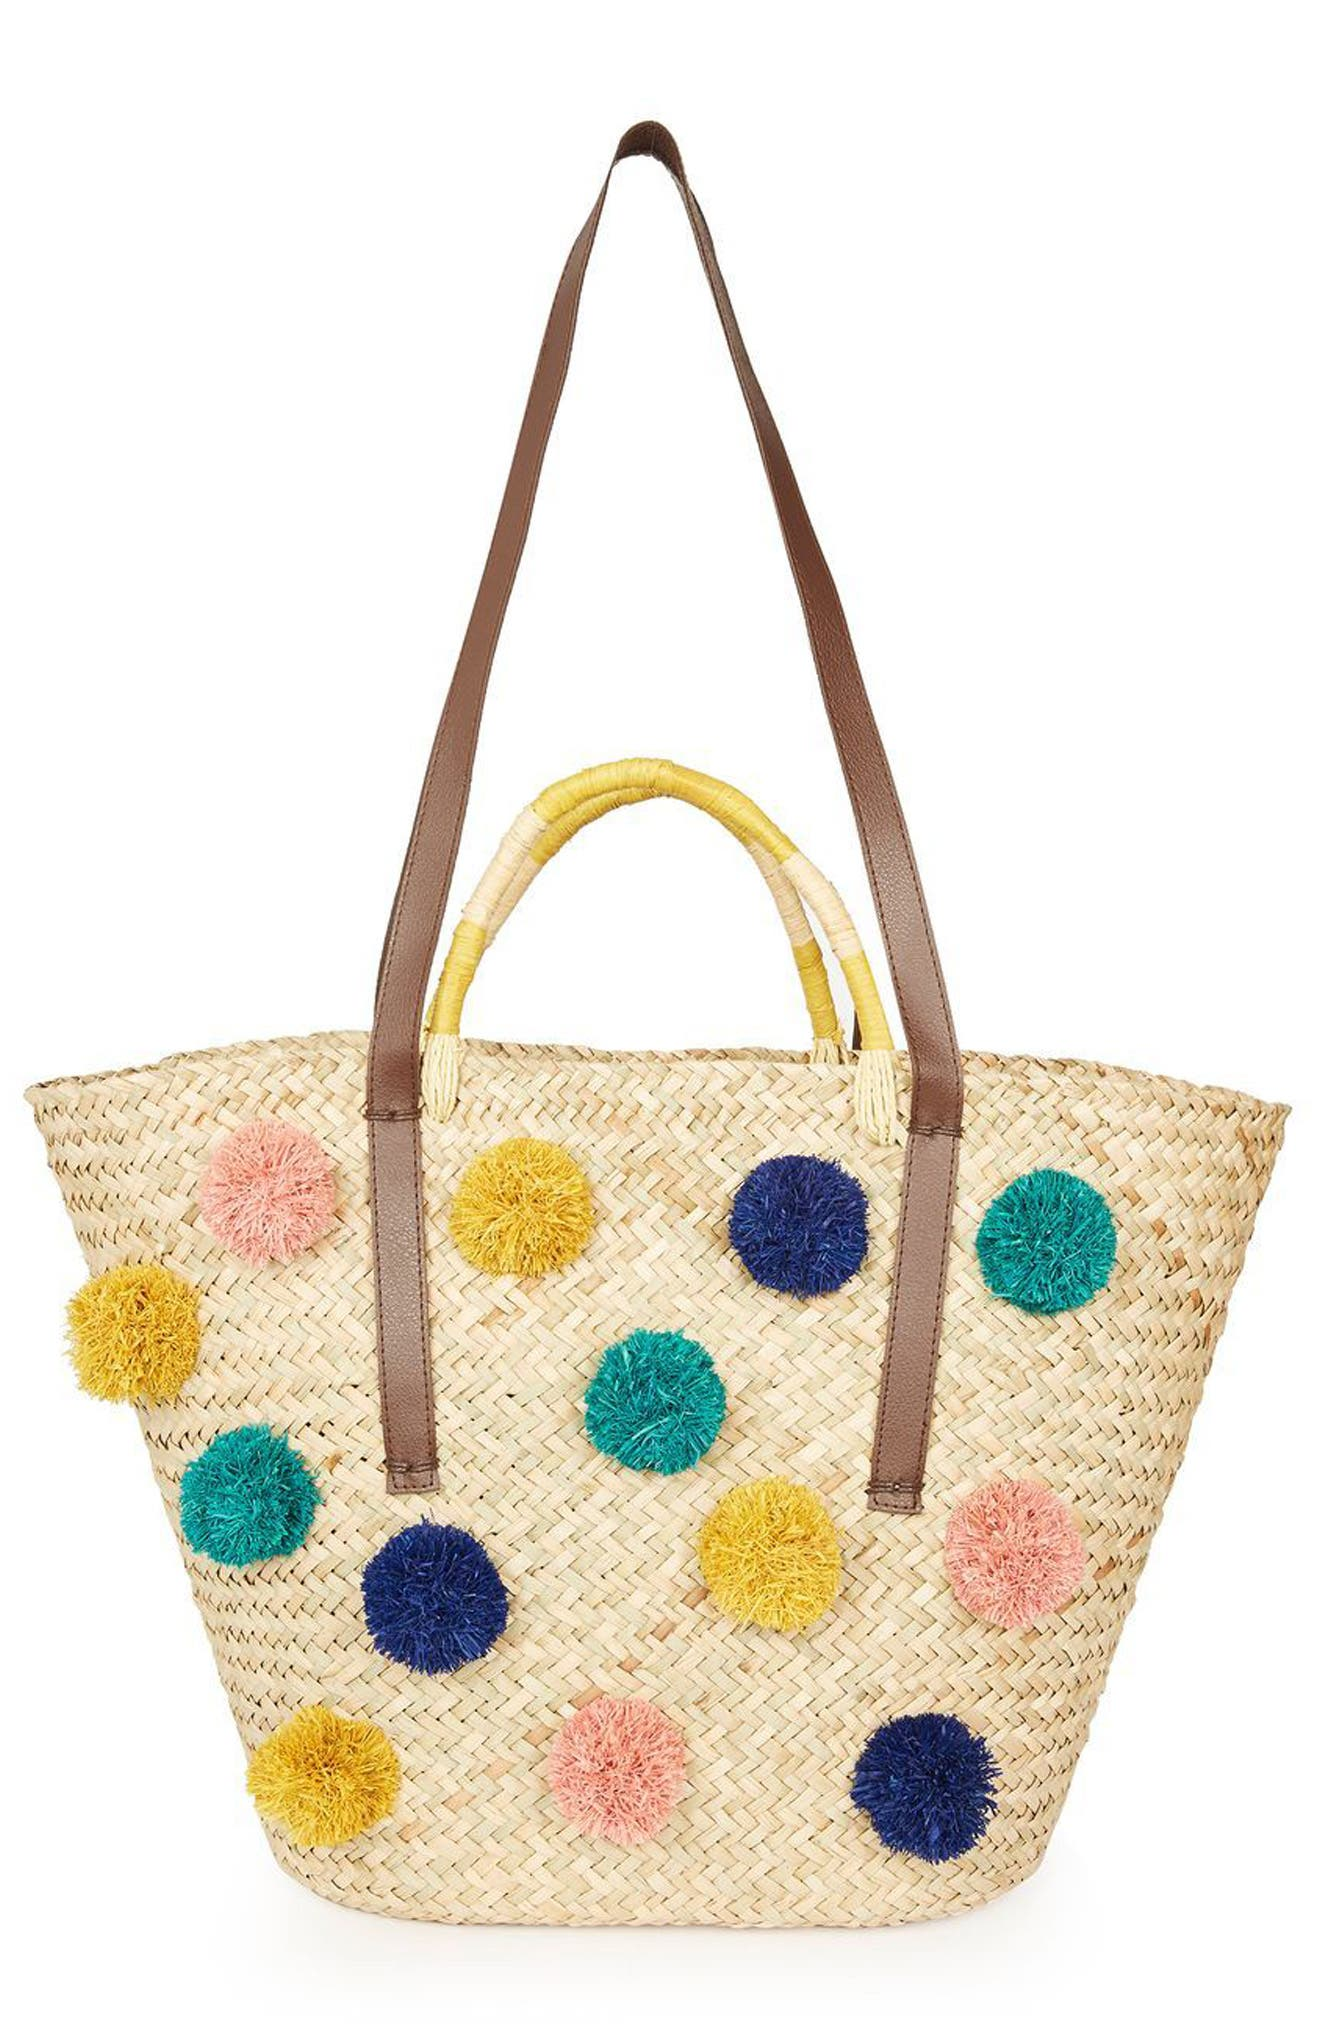 Pompom Straw Tote Bag,                             Main thumbnail 1, color,                             Nude